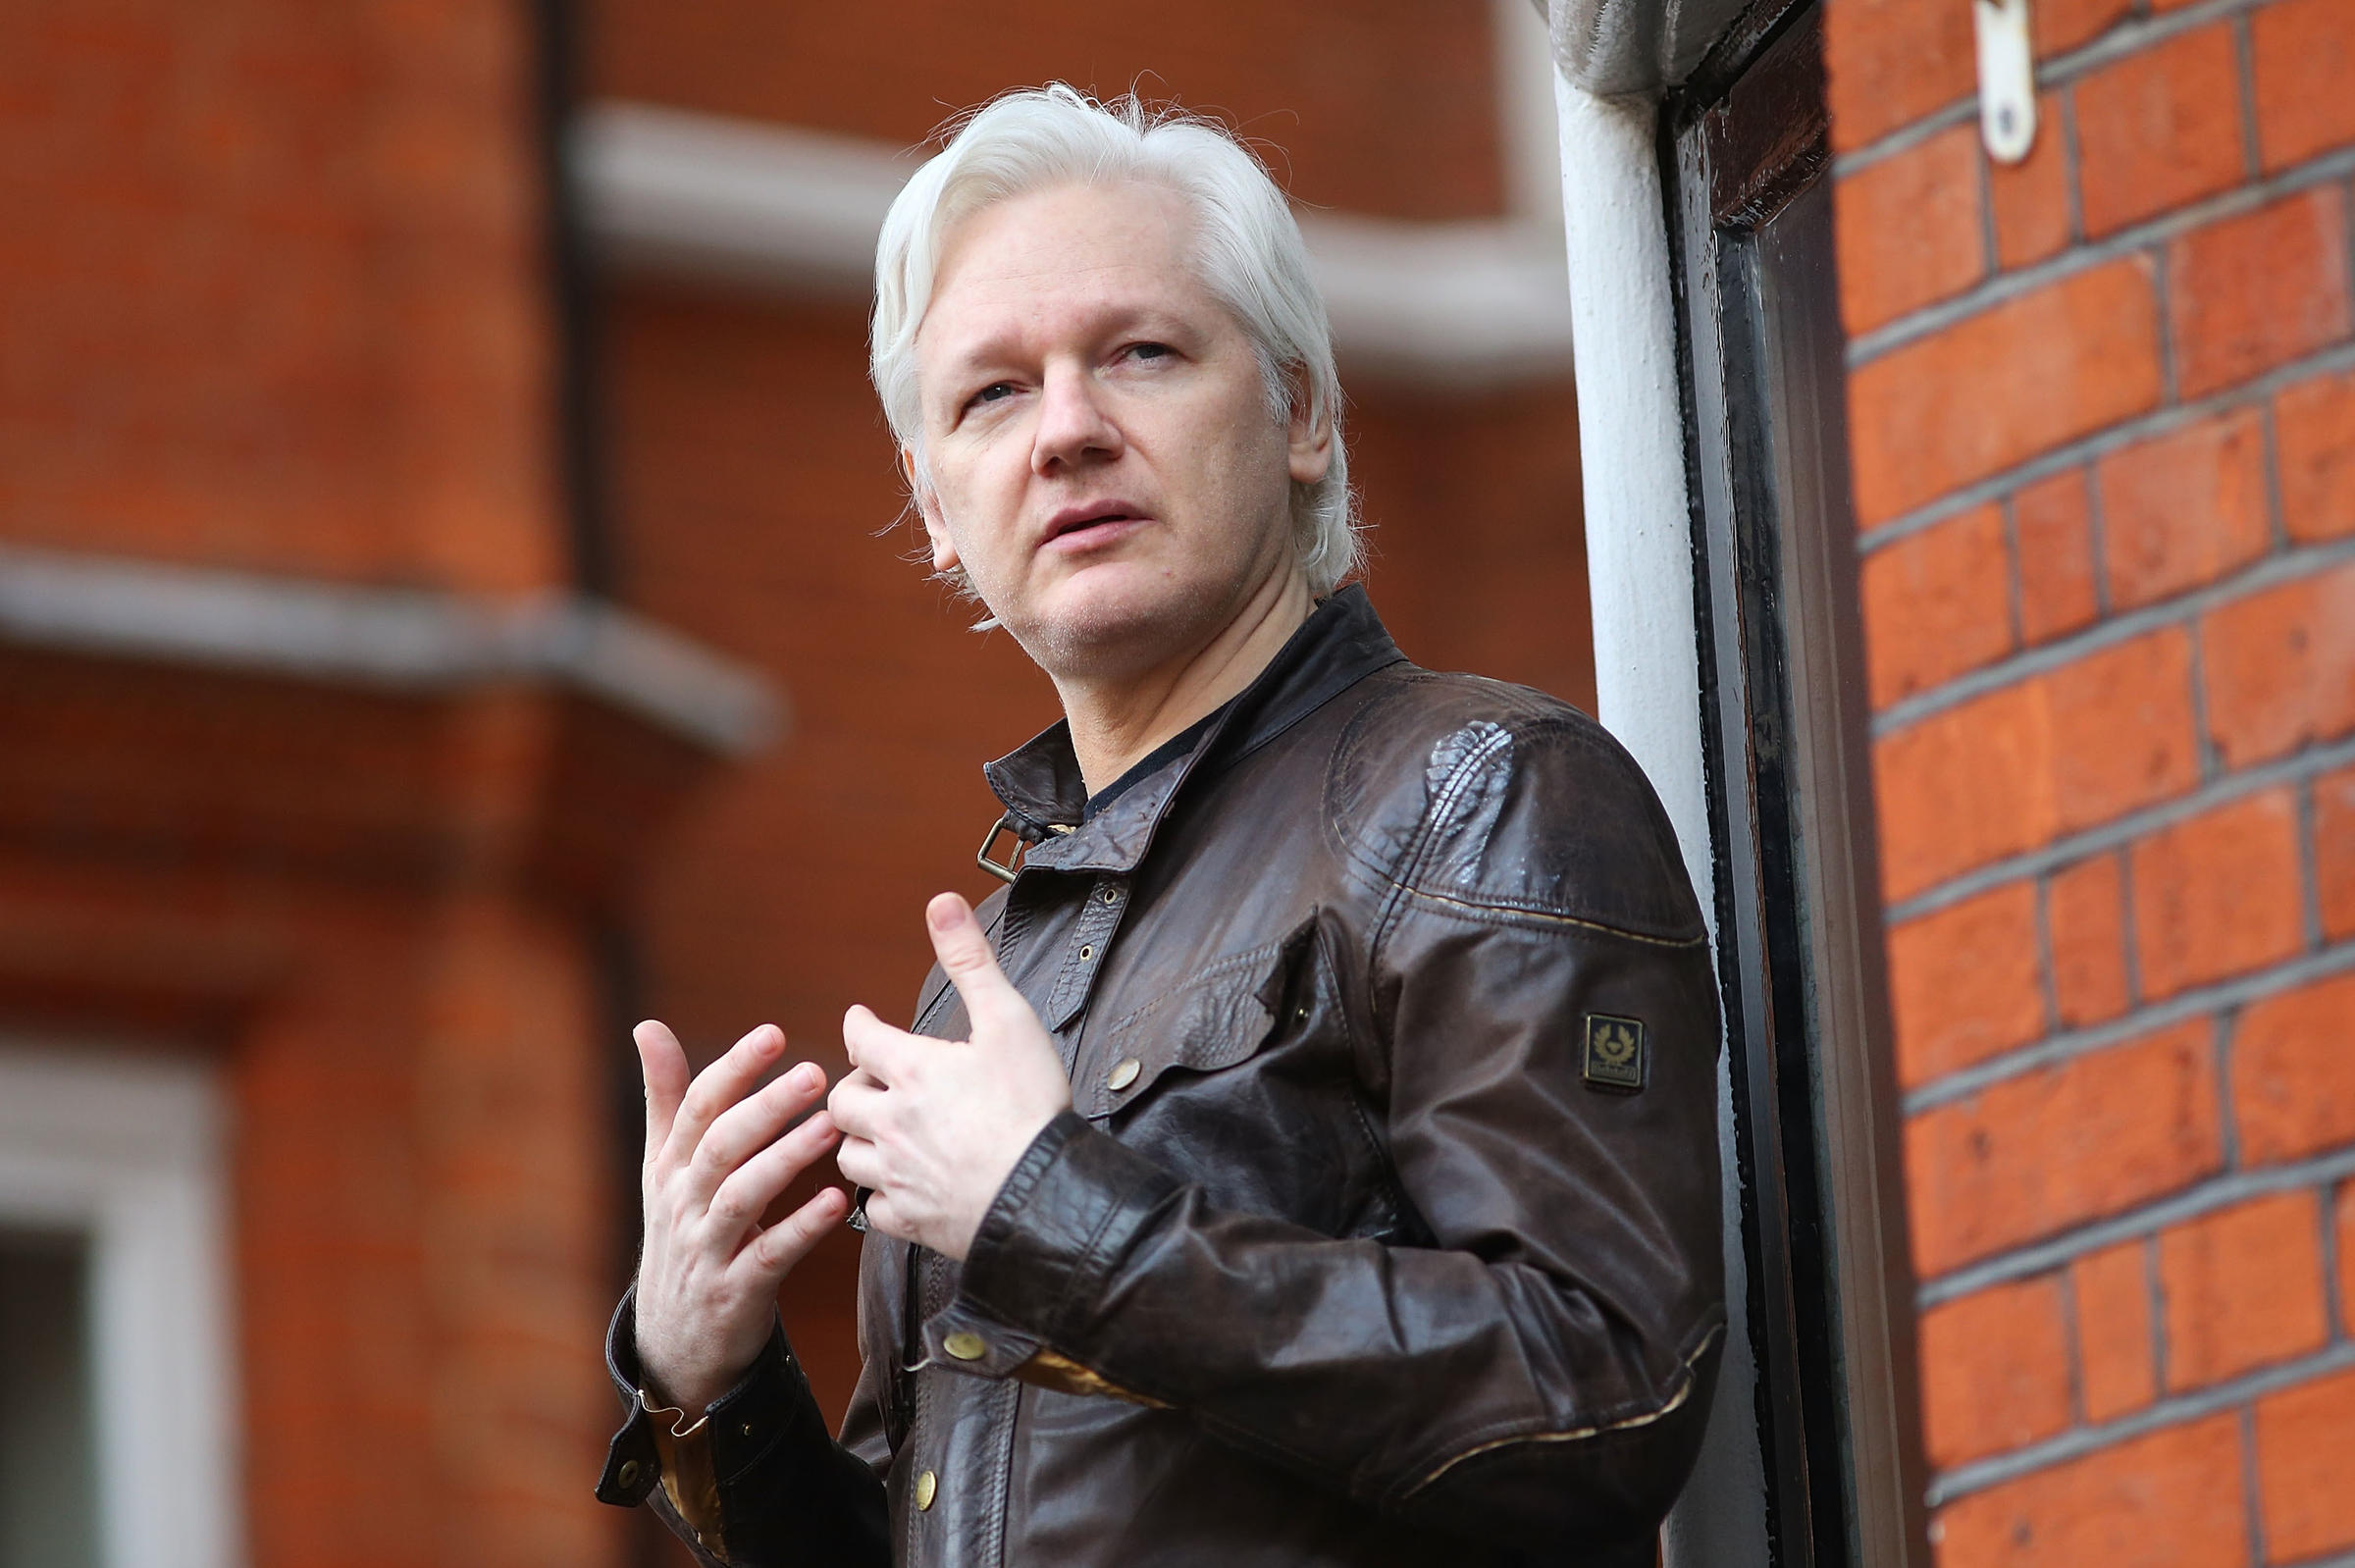 Judge upholds u k warrant against julian assange wlrn for Julian balcony